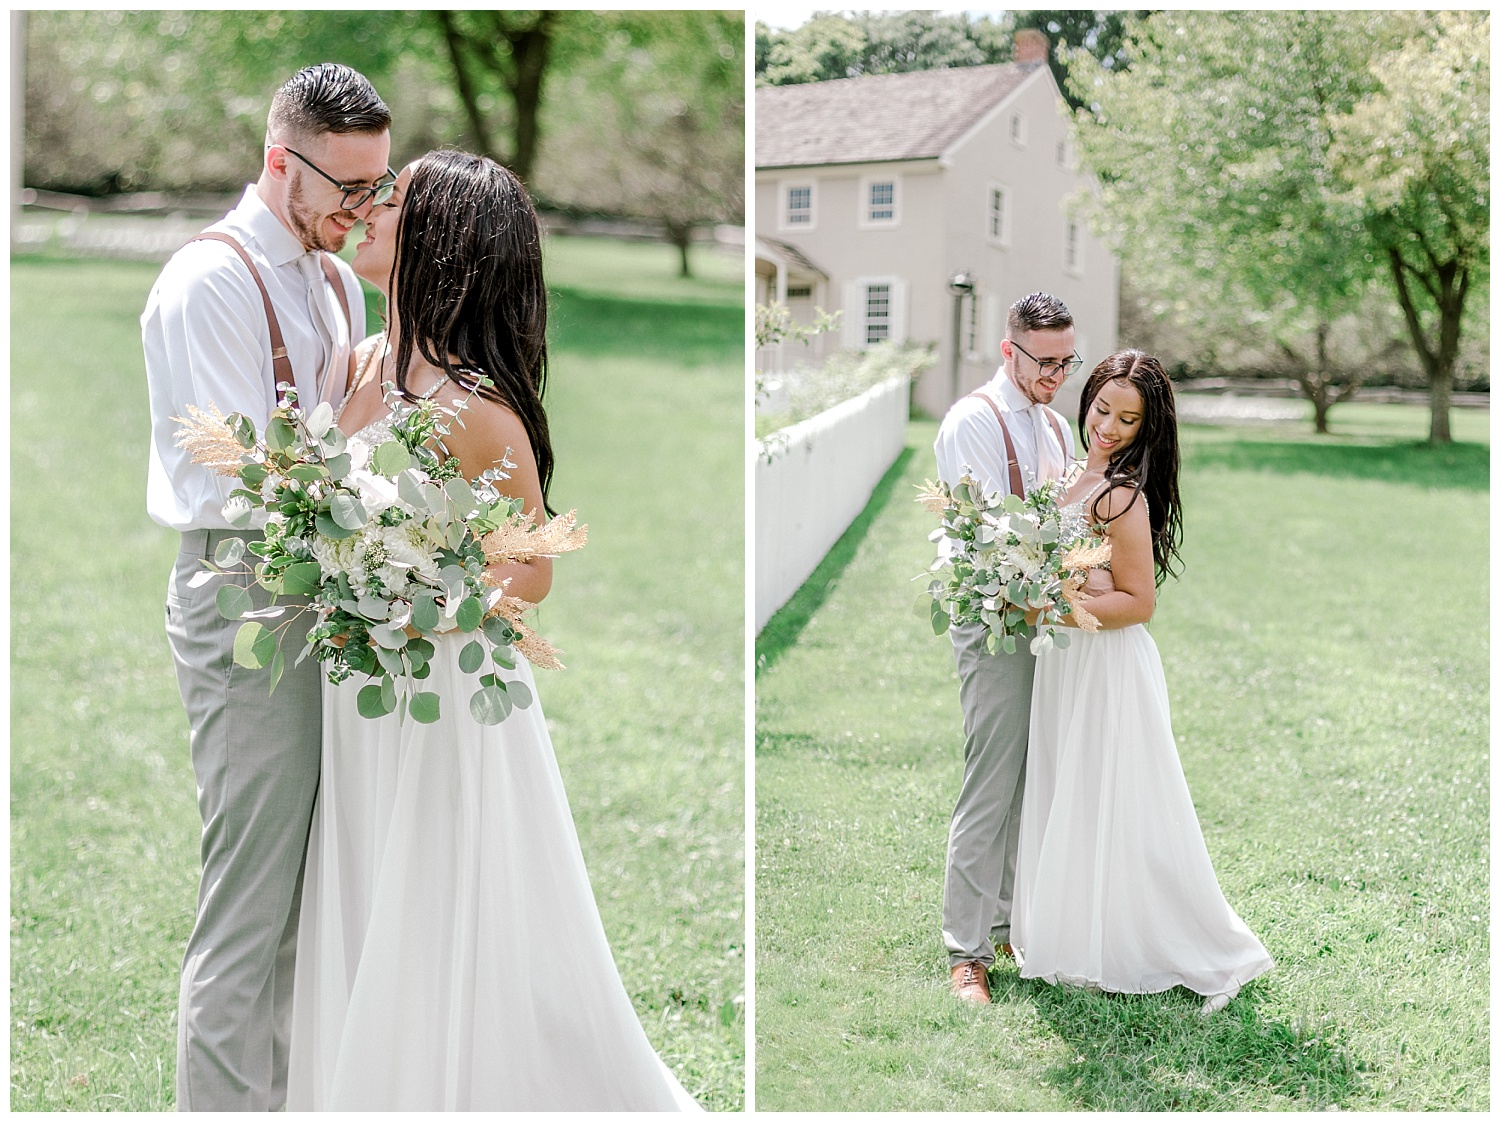 Olive green and white rustic barn wedding at burnside plantation in bethlehem pennsylvania by PA based destination wedding and lifestyle photographer Lytle photography (23).jpg